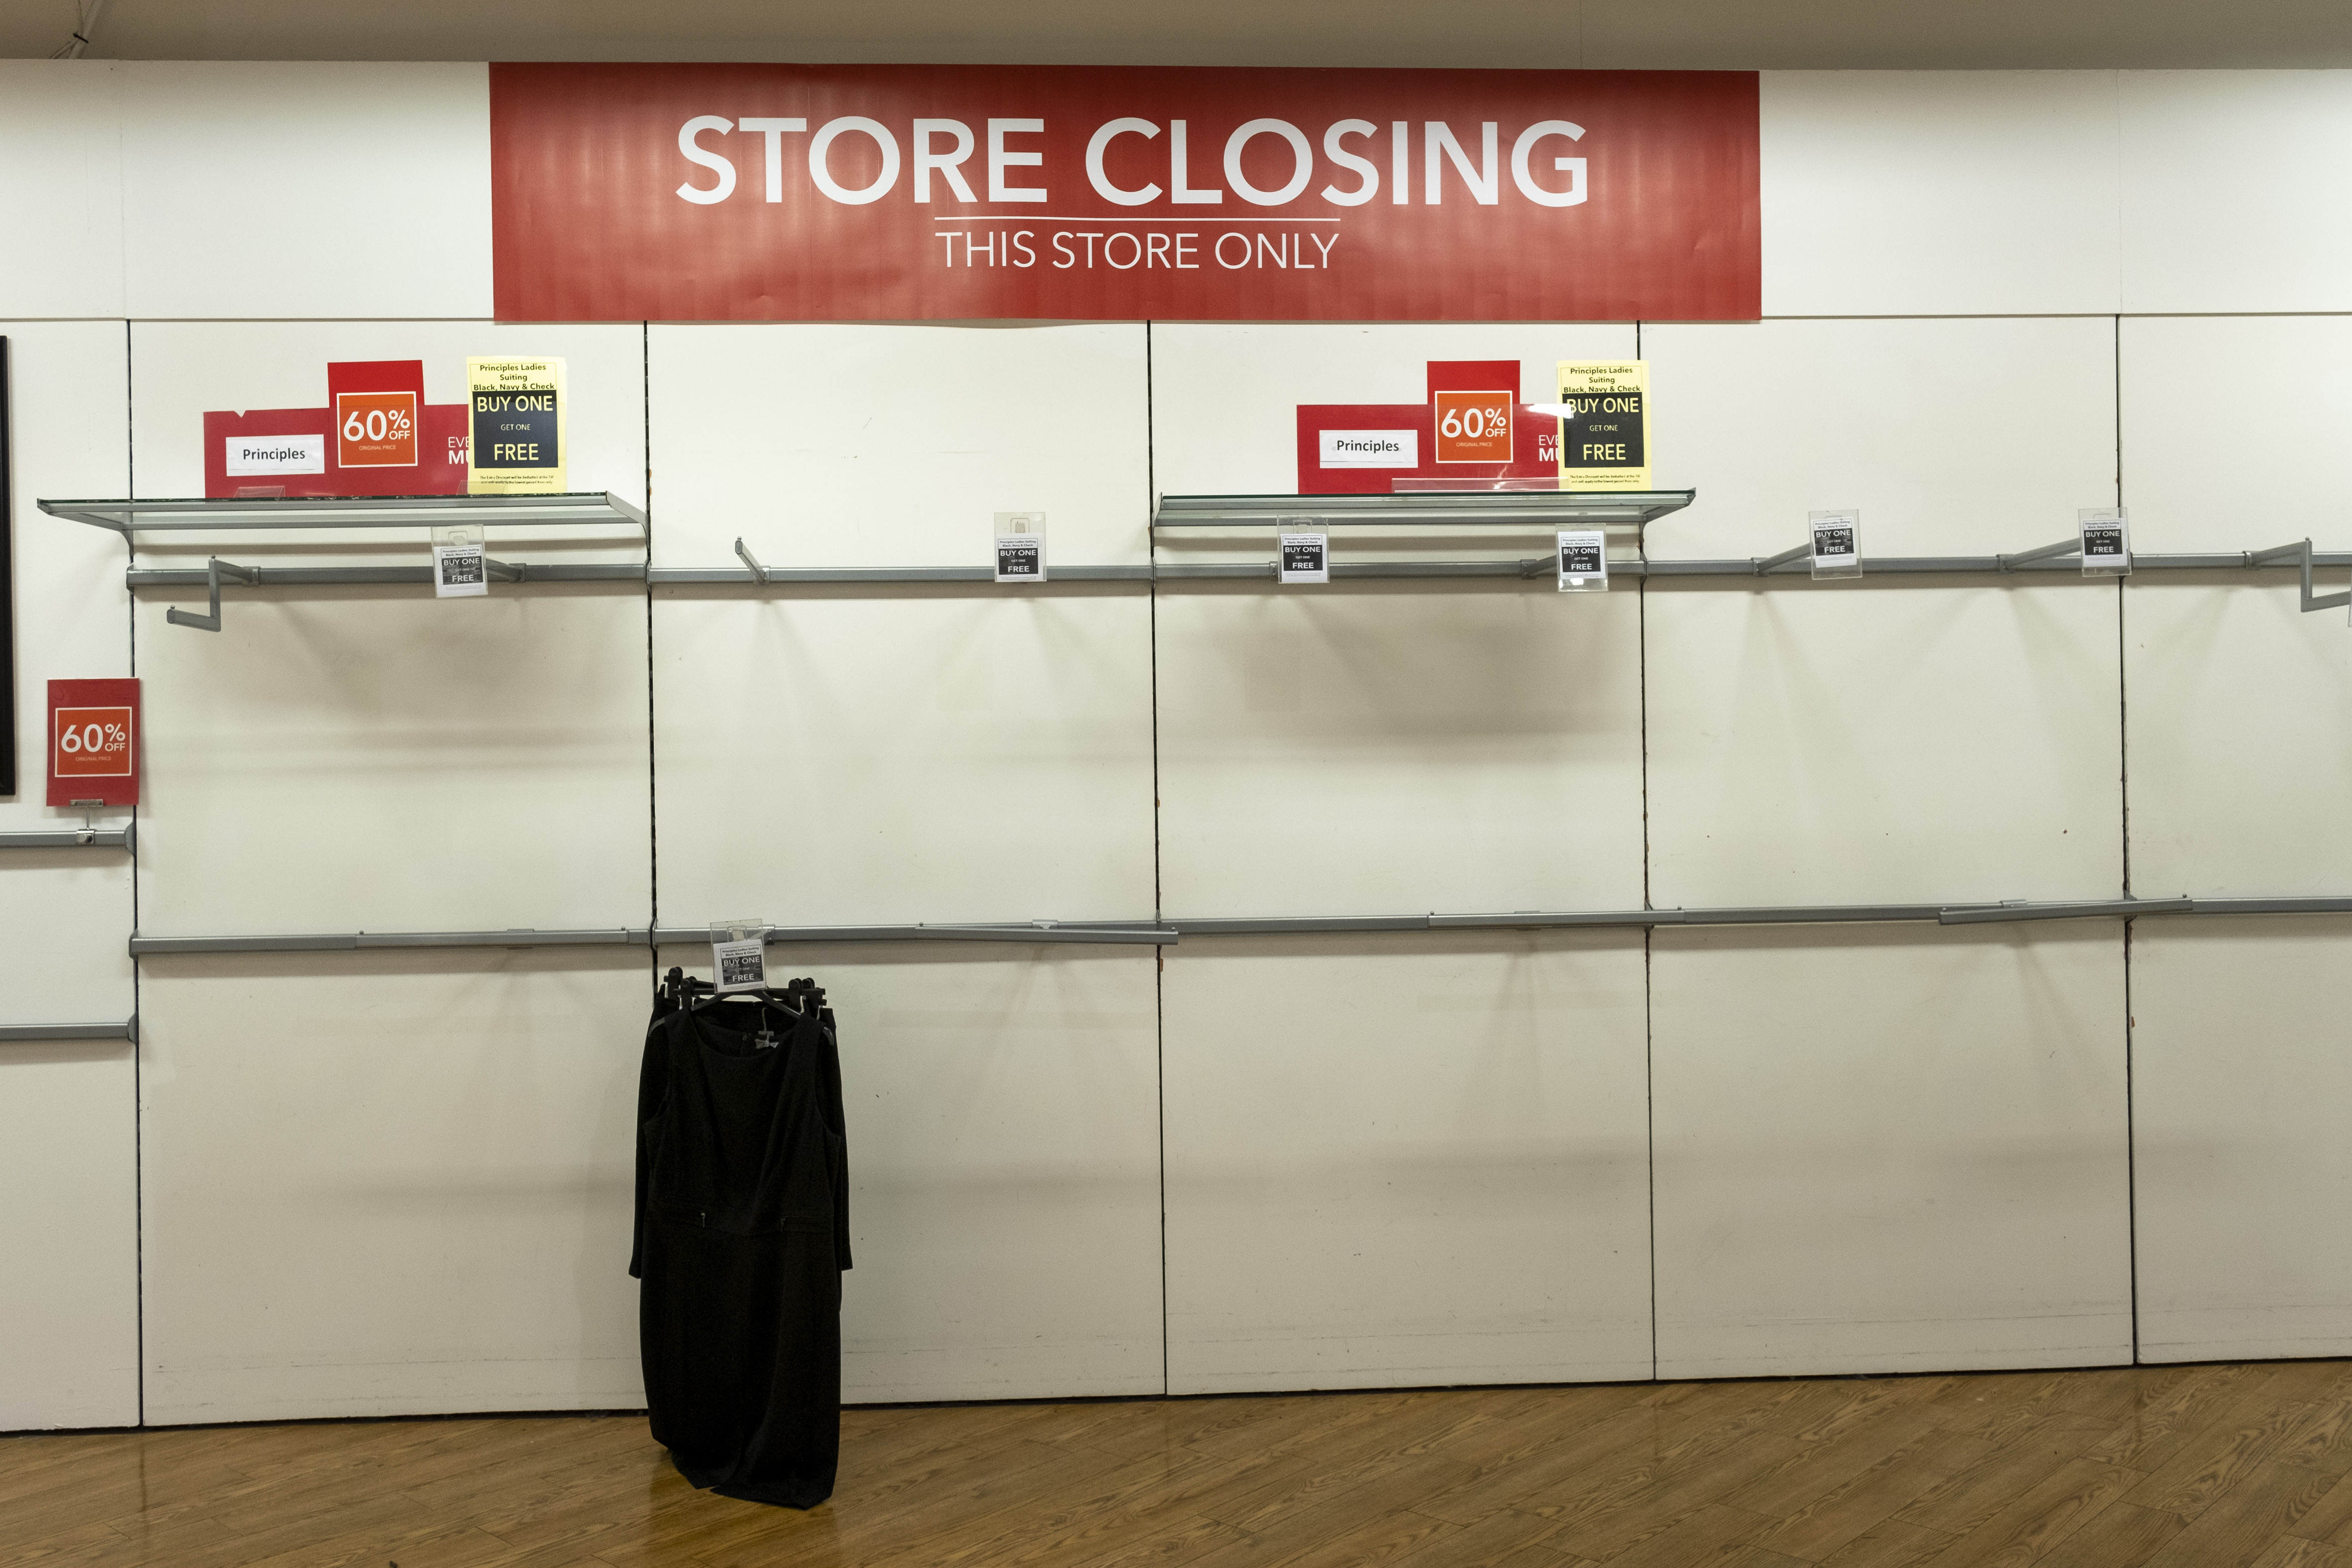 Empty shelves inside the Folkestone Debenhams store in the final few days of the Everything Must Go sale before closing down on 13th Jauary 2020 in Folkestone, Kent. United Kingdom. The company announced the closure of 19 stores across the UK after going into administration in 2019.  (photo by Andrew Aitchison / In pictures via Getty Images)